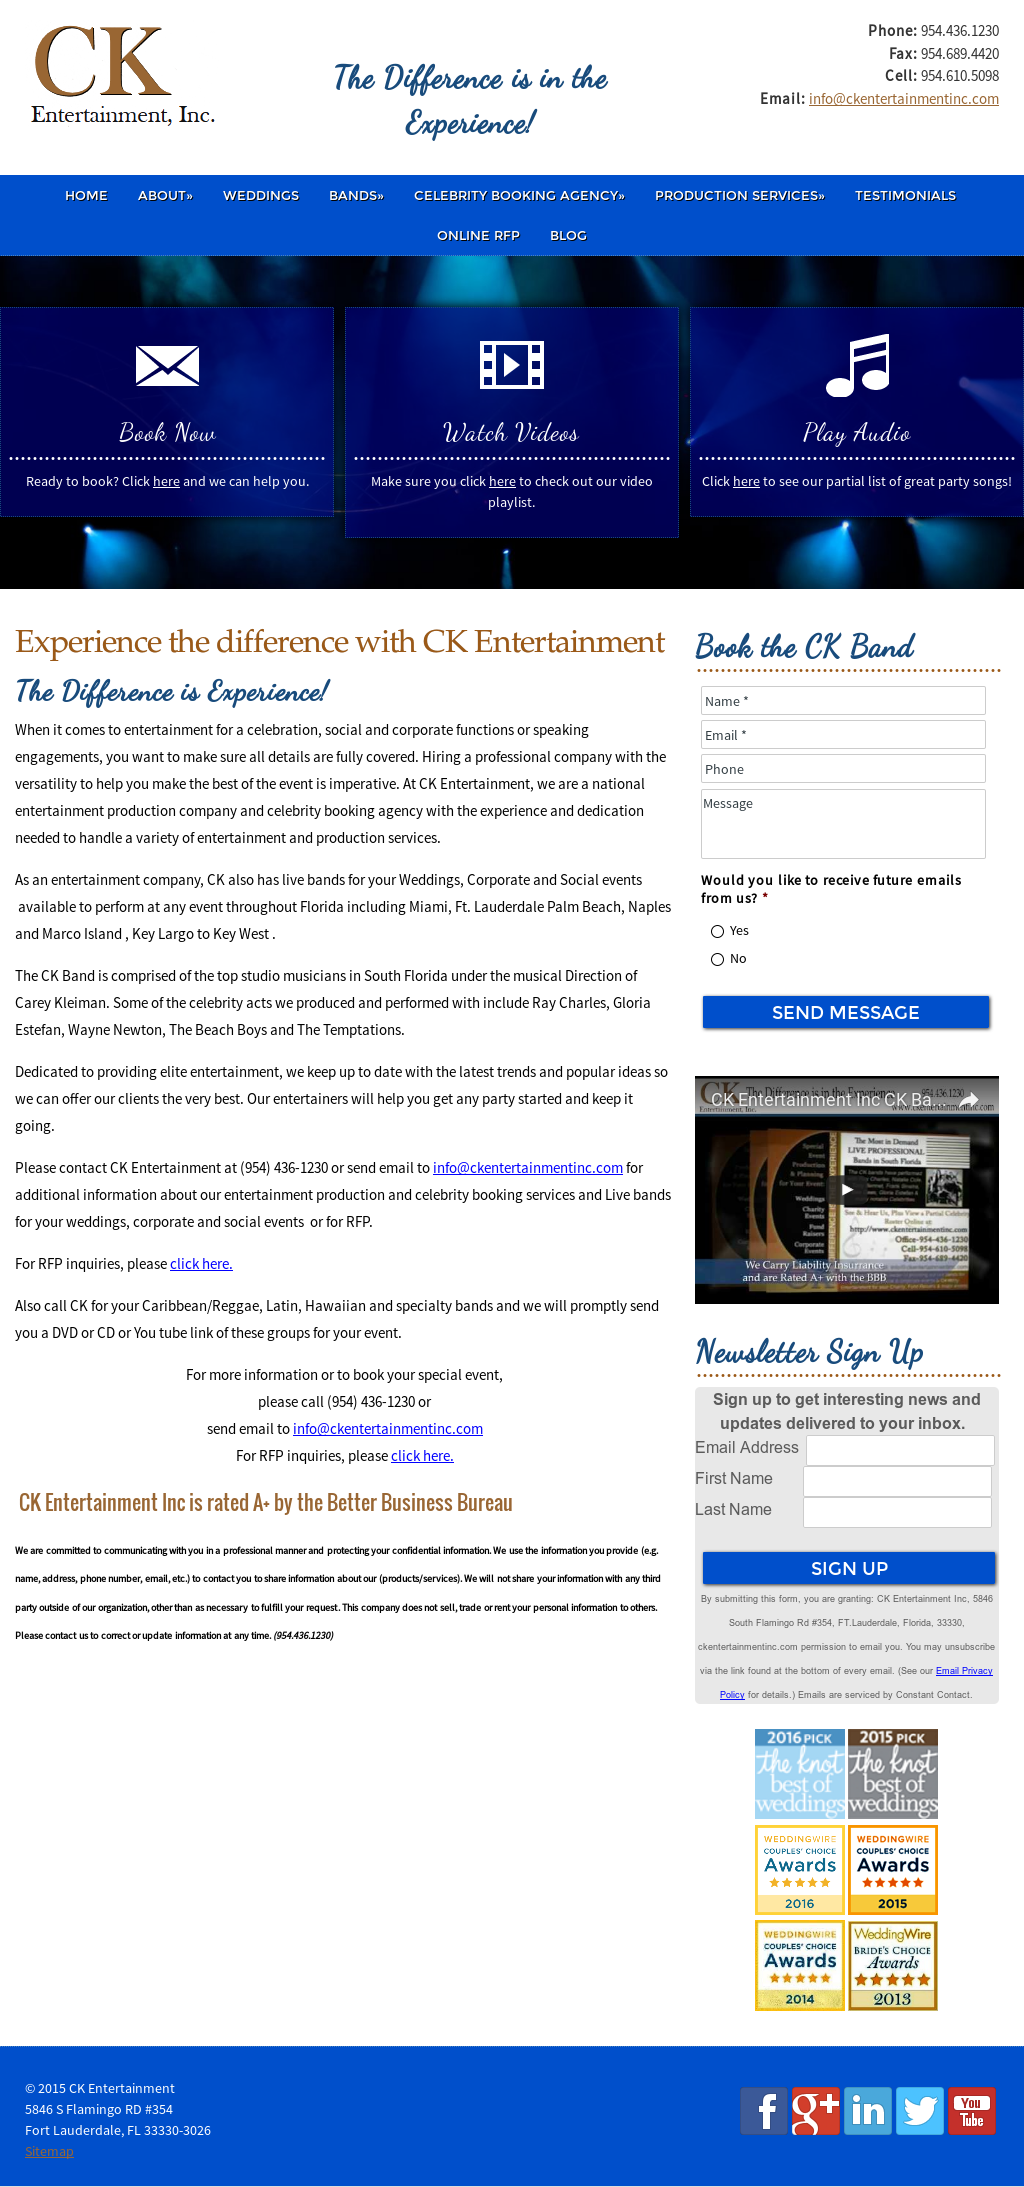 CK Entertainment Competitors, Revenue and Employees - Owler Company